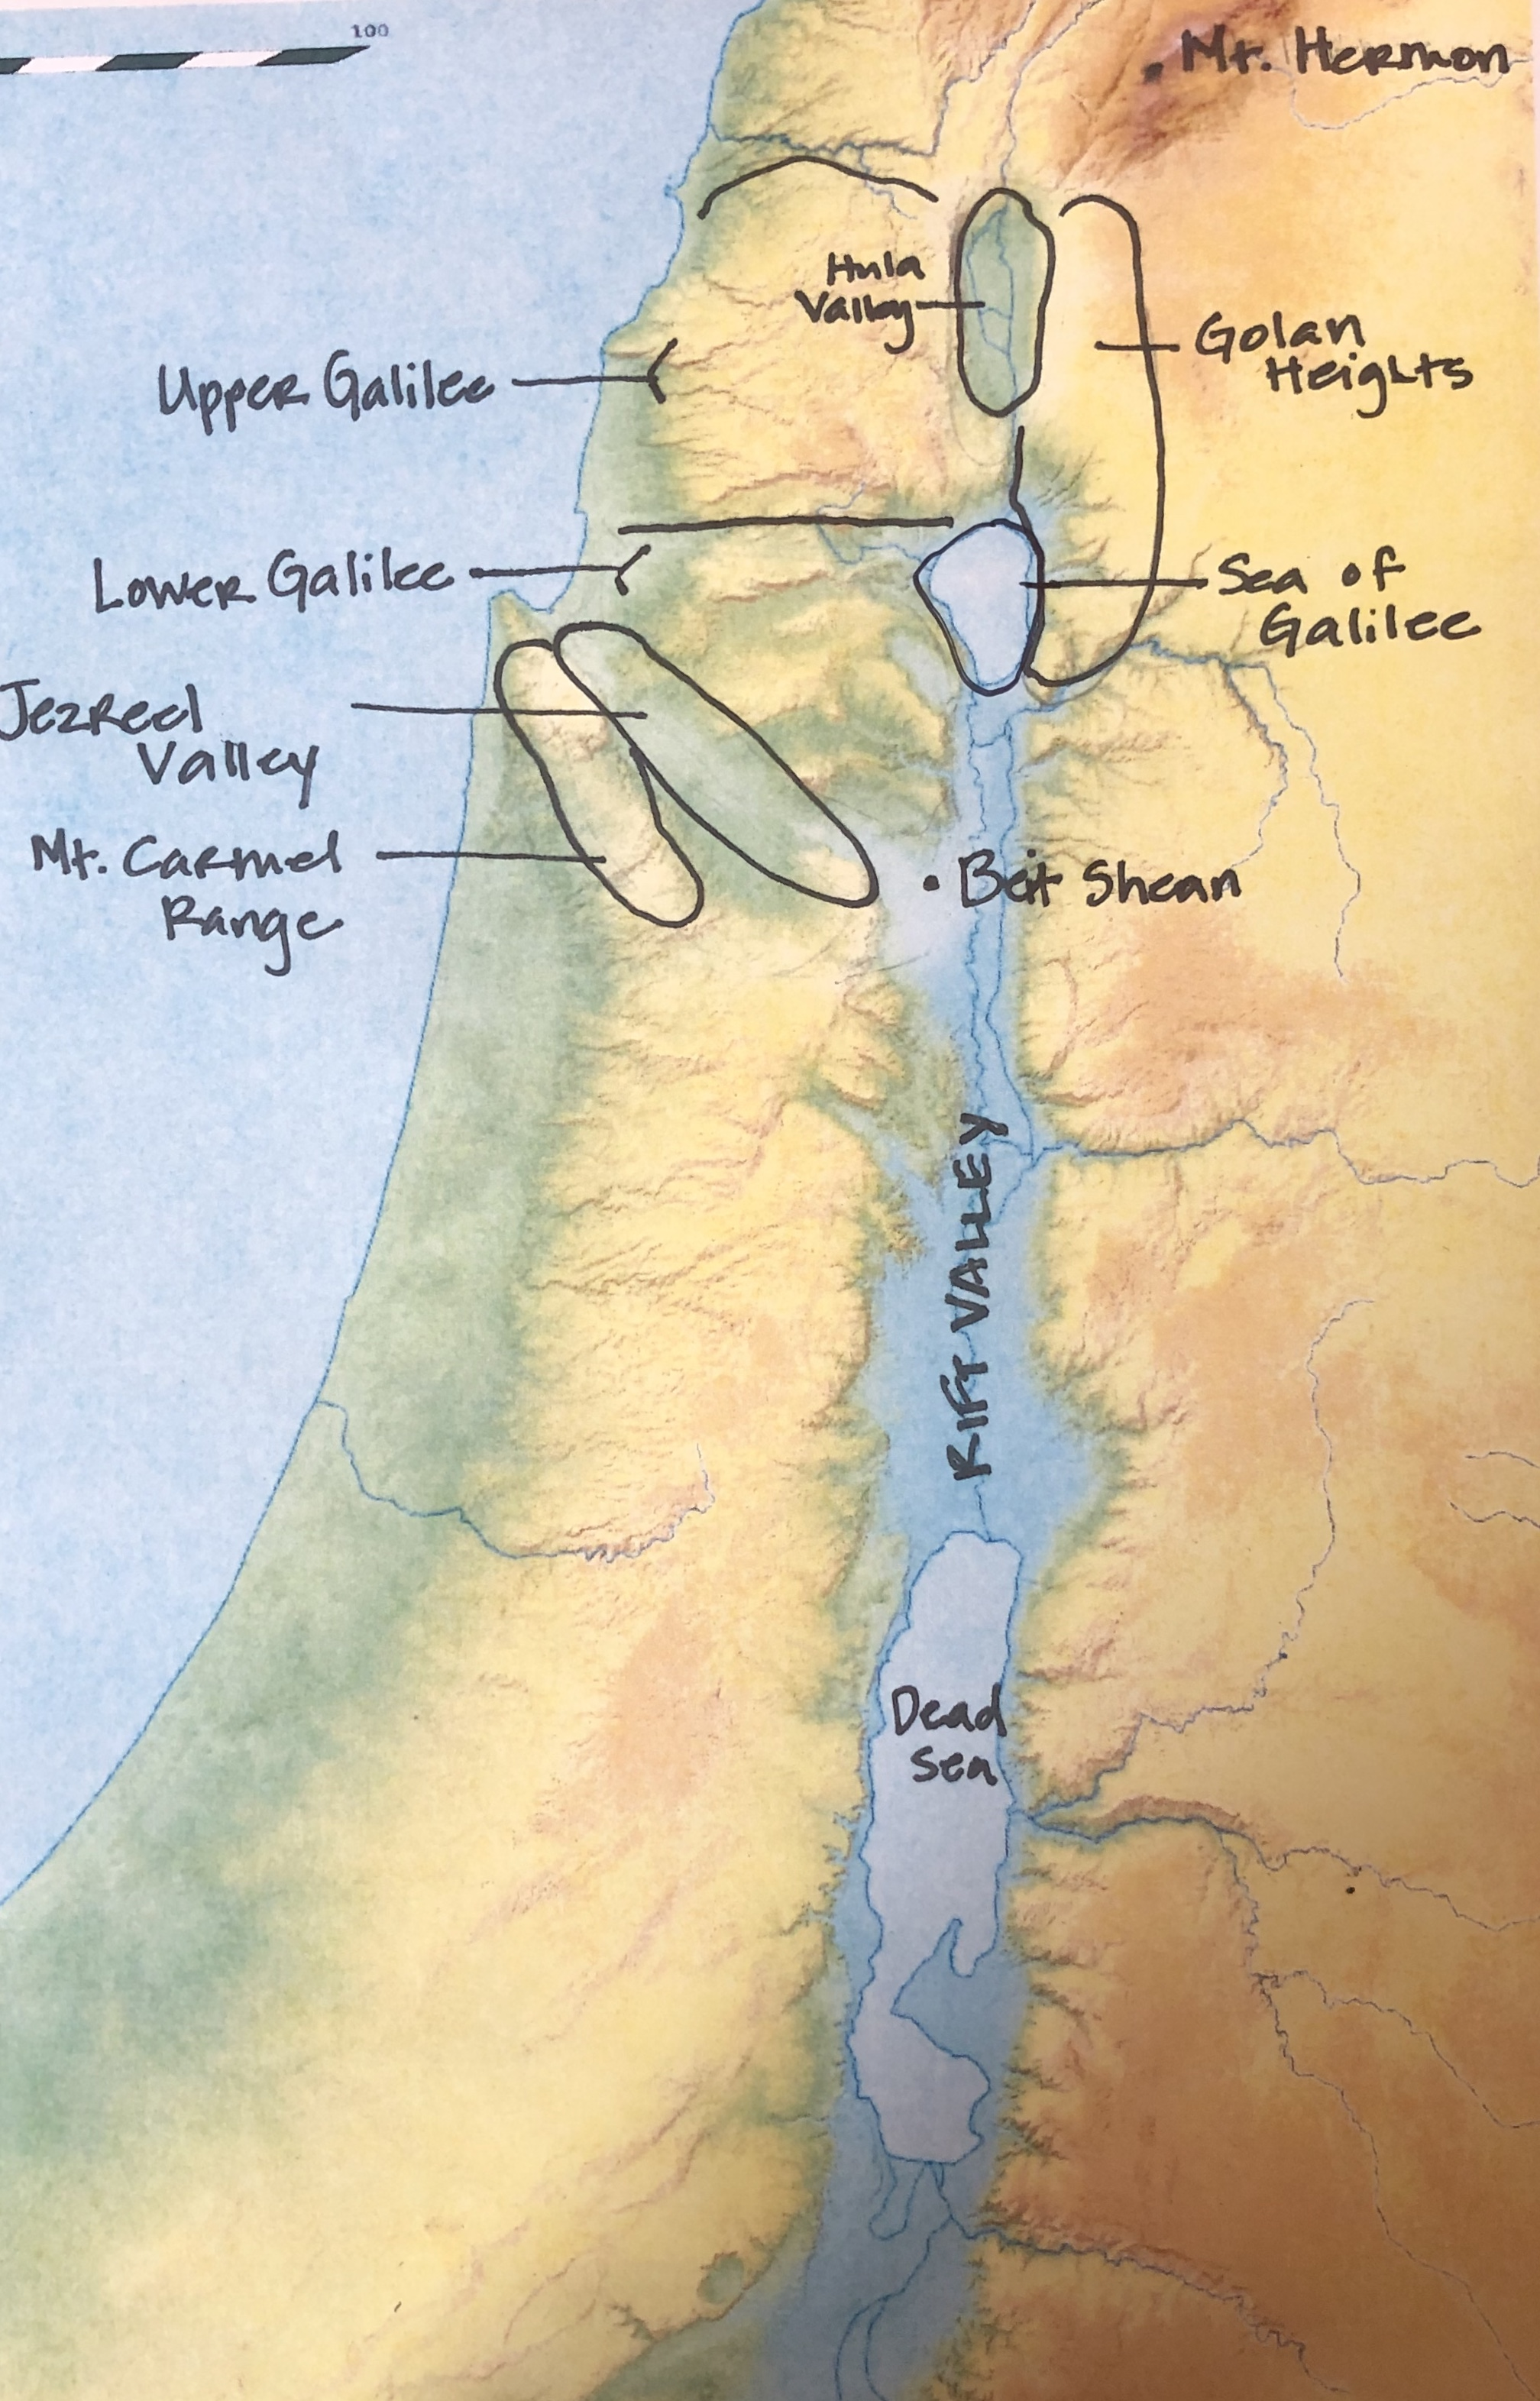 Upper Galilee Regions